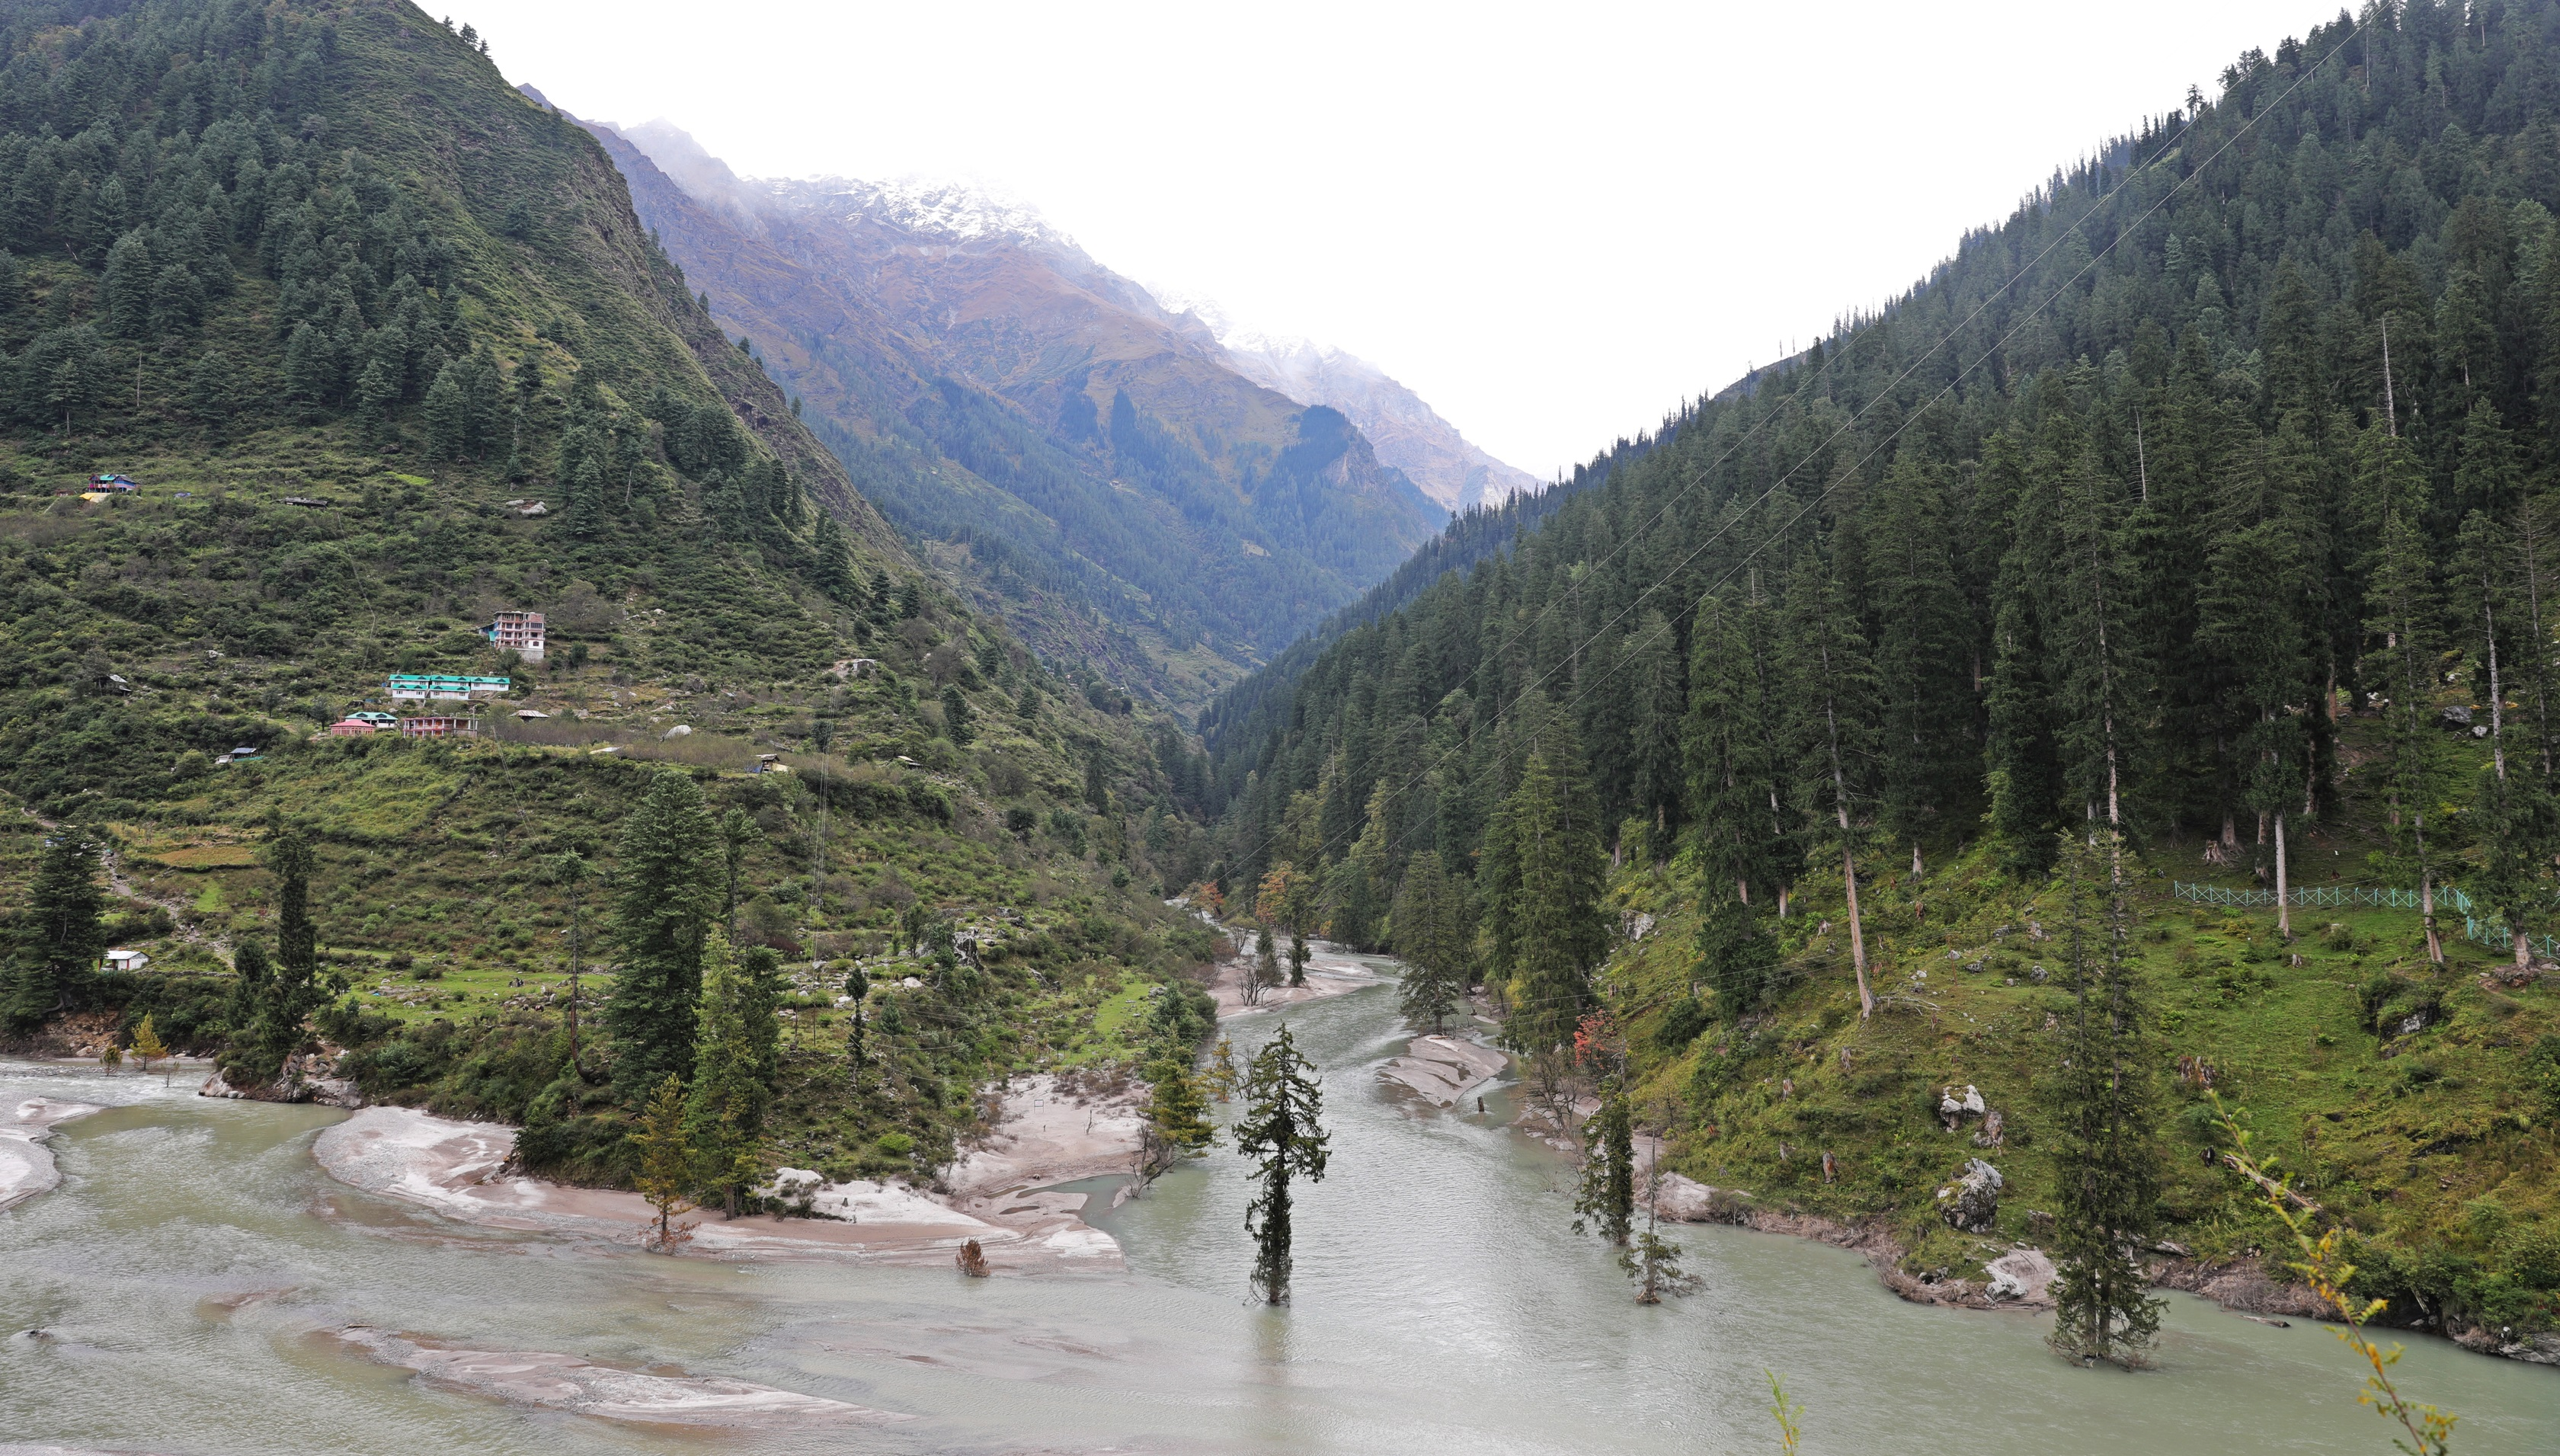 Confluence of Tosh and Parvati Rivers